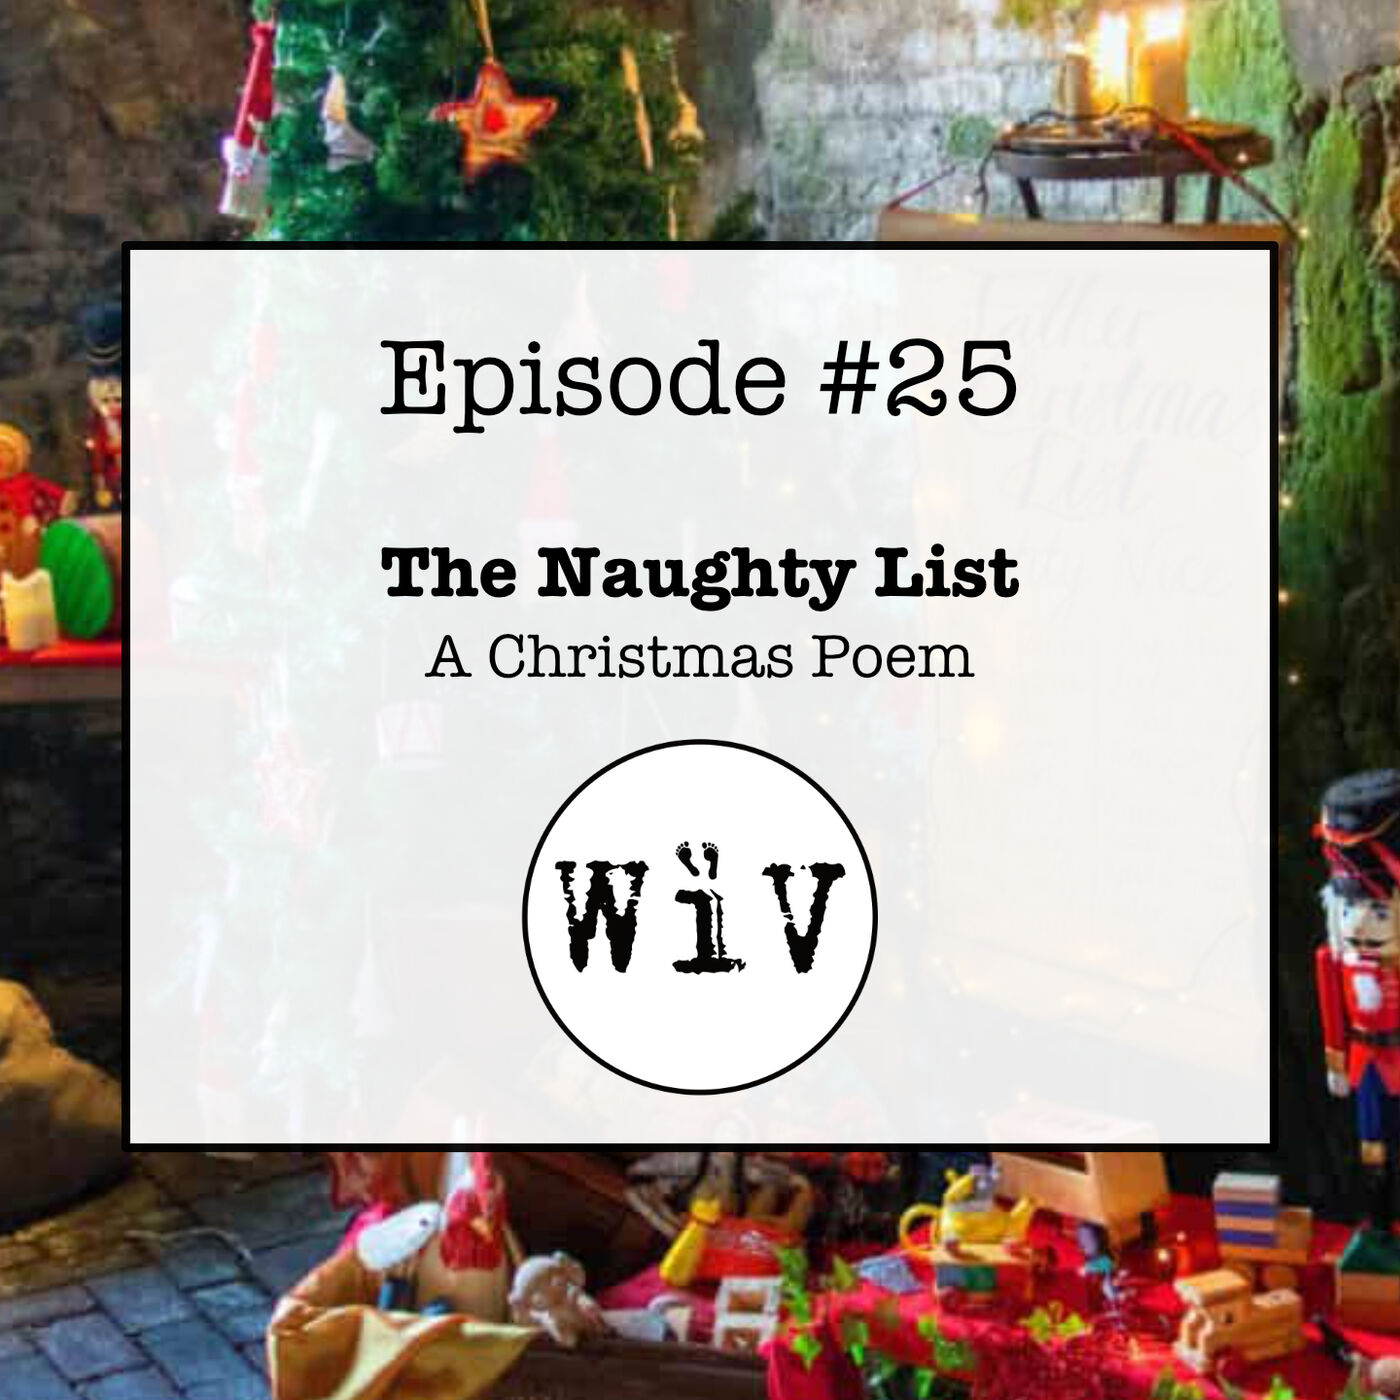 The Naughty List: A Christmas Poem